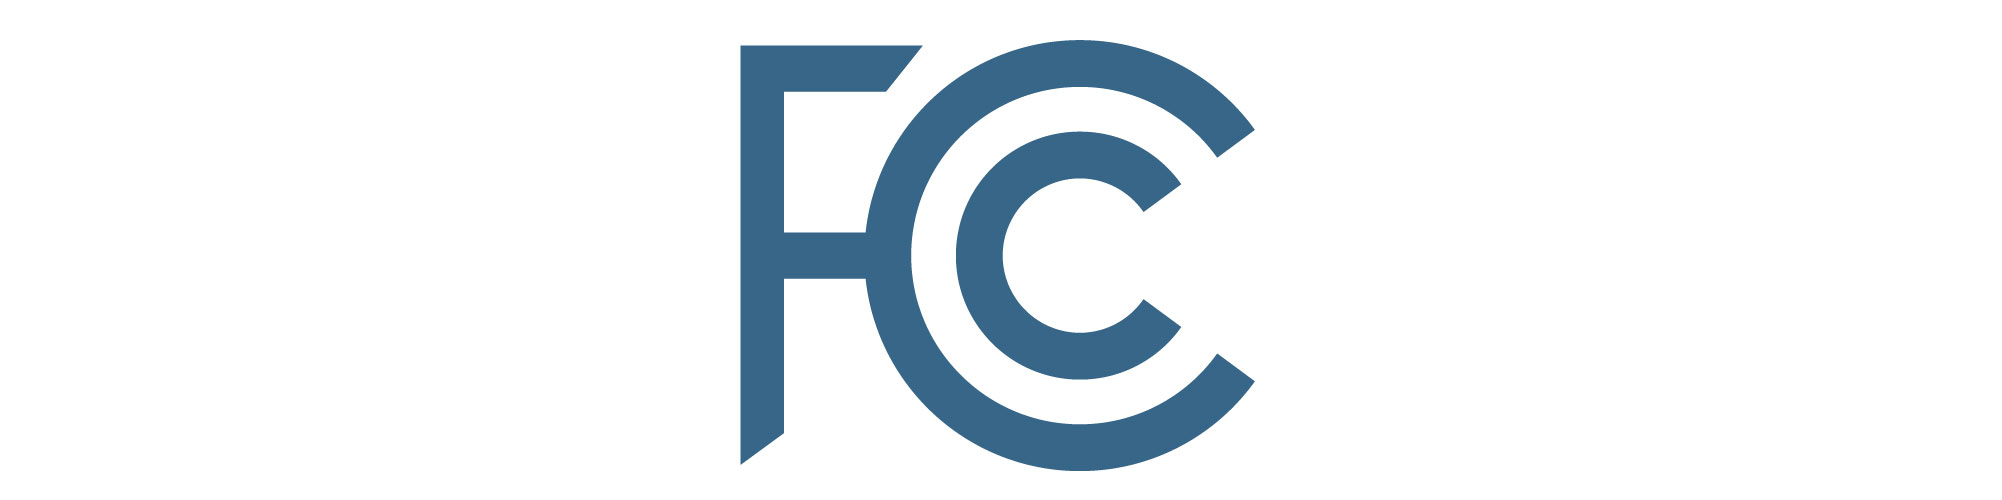 The FCC Extends Net Neutrality Public Comment Period until June 18